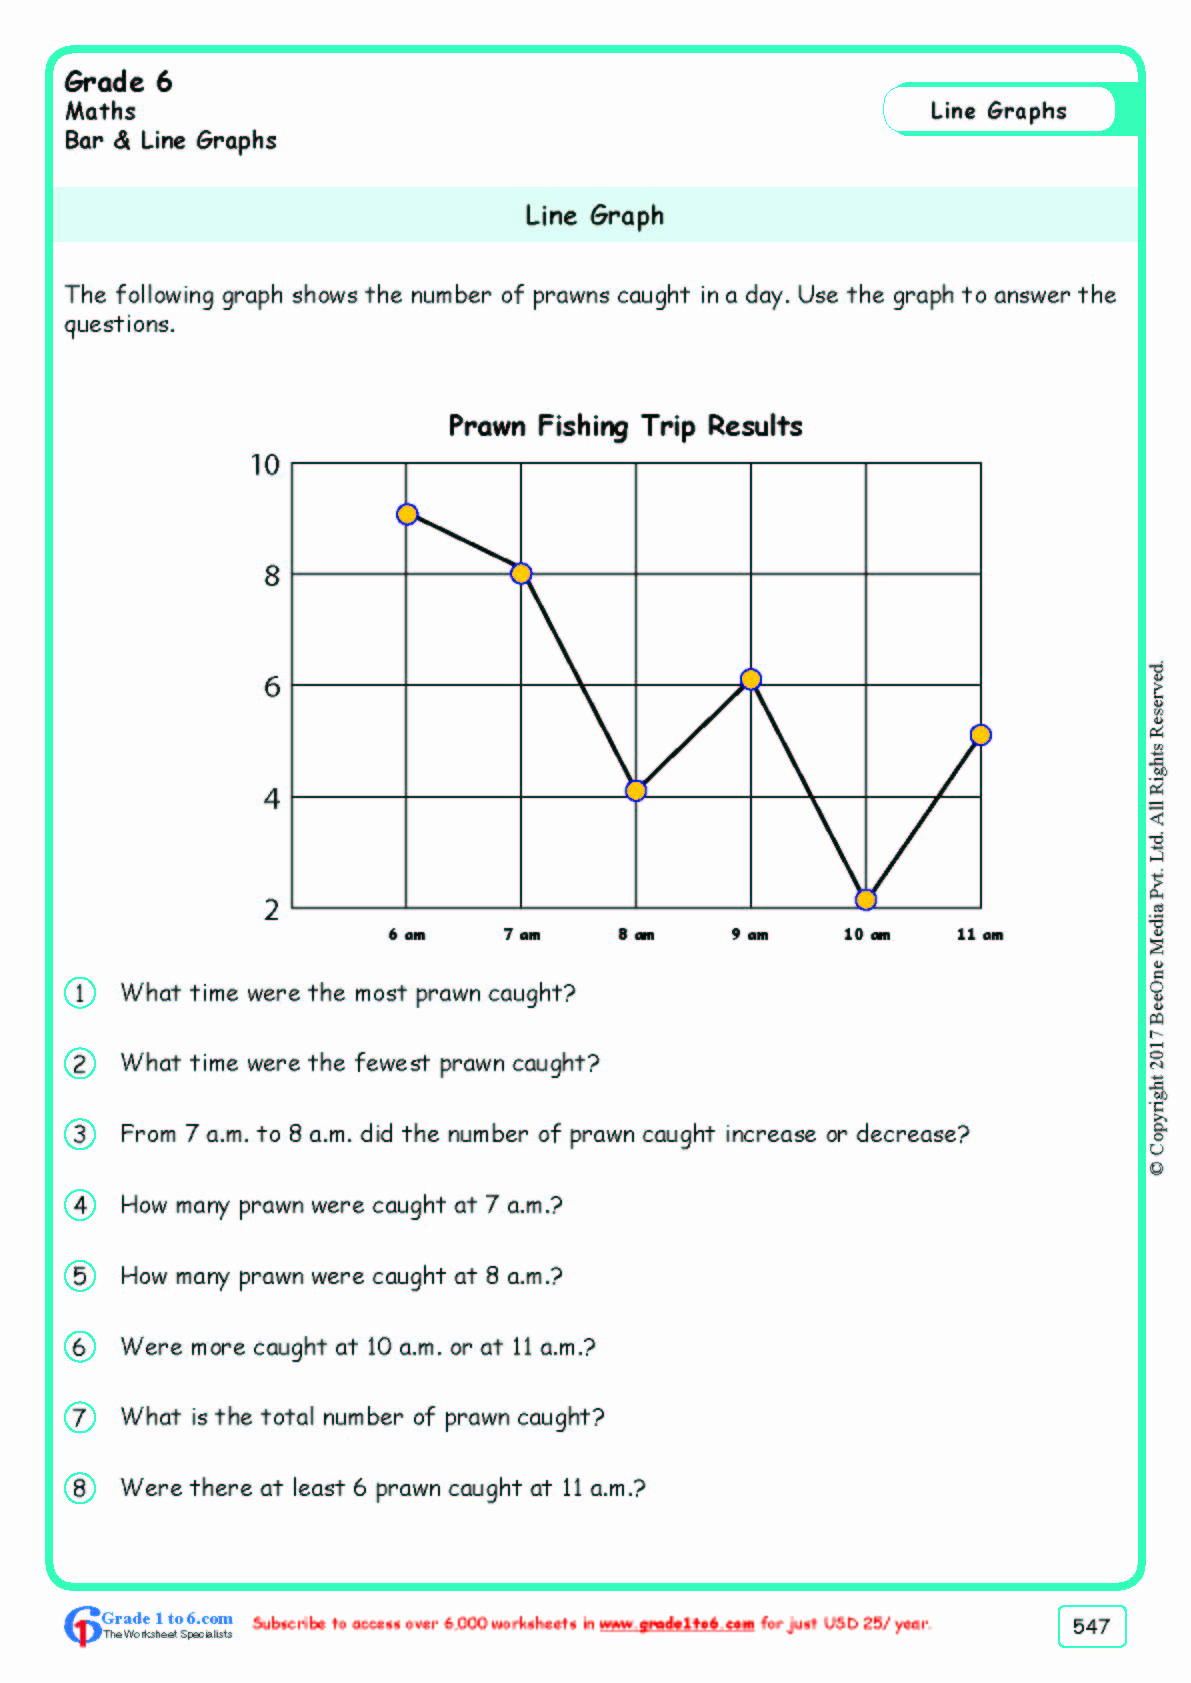 Free Line Graph Worksheets Lovely Free Math Worksheets for Grade 6 Class 6 Ib Cbse Icse K12